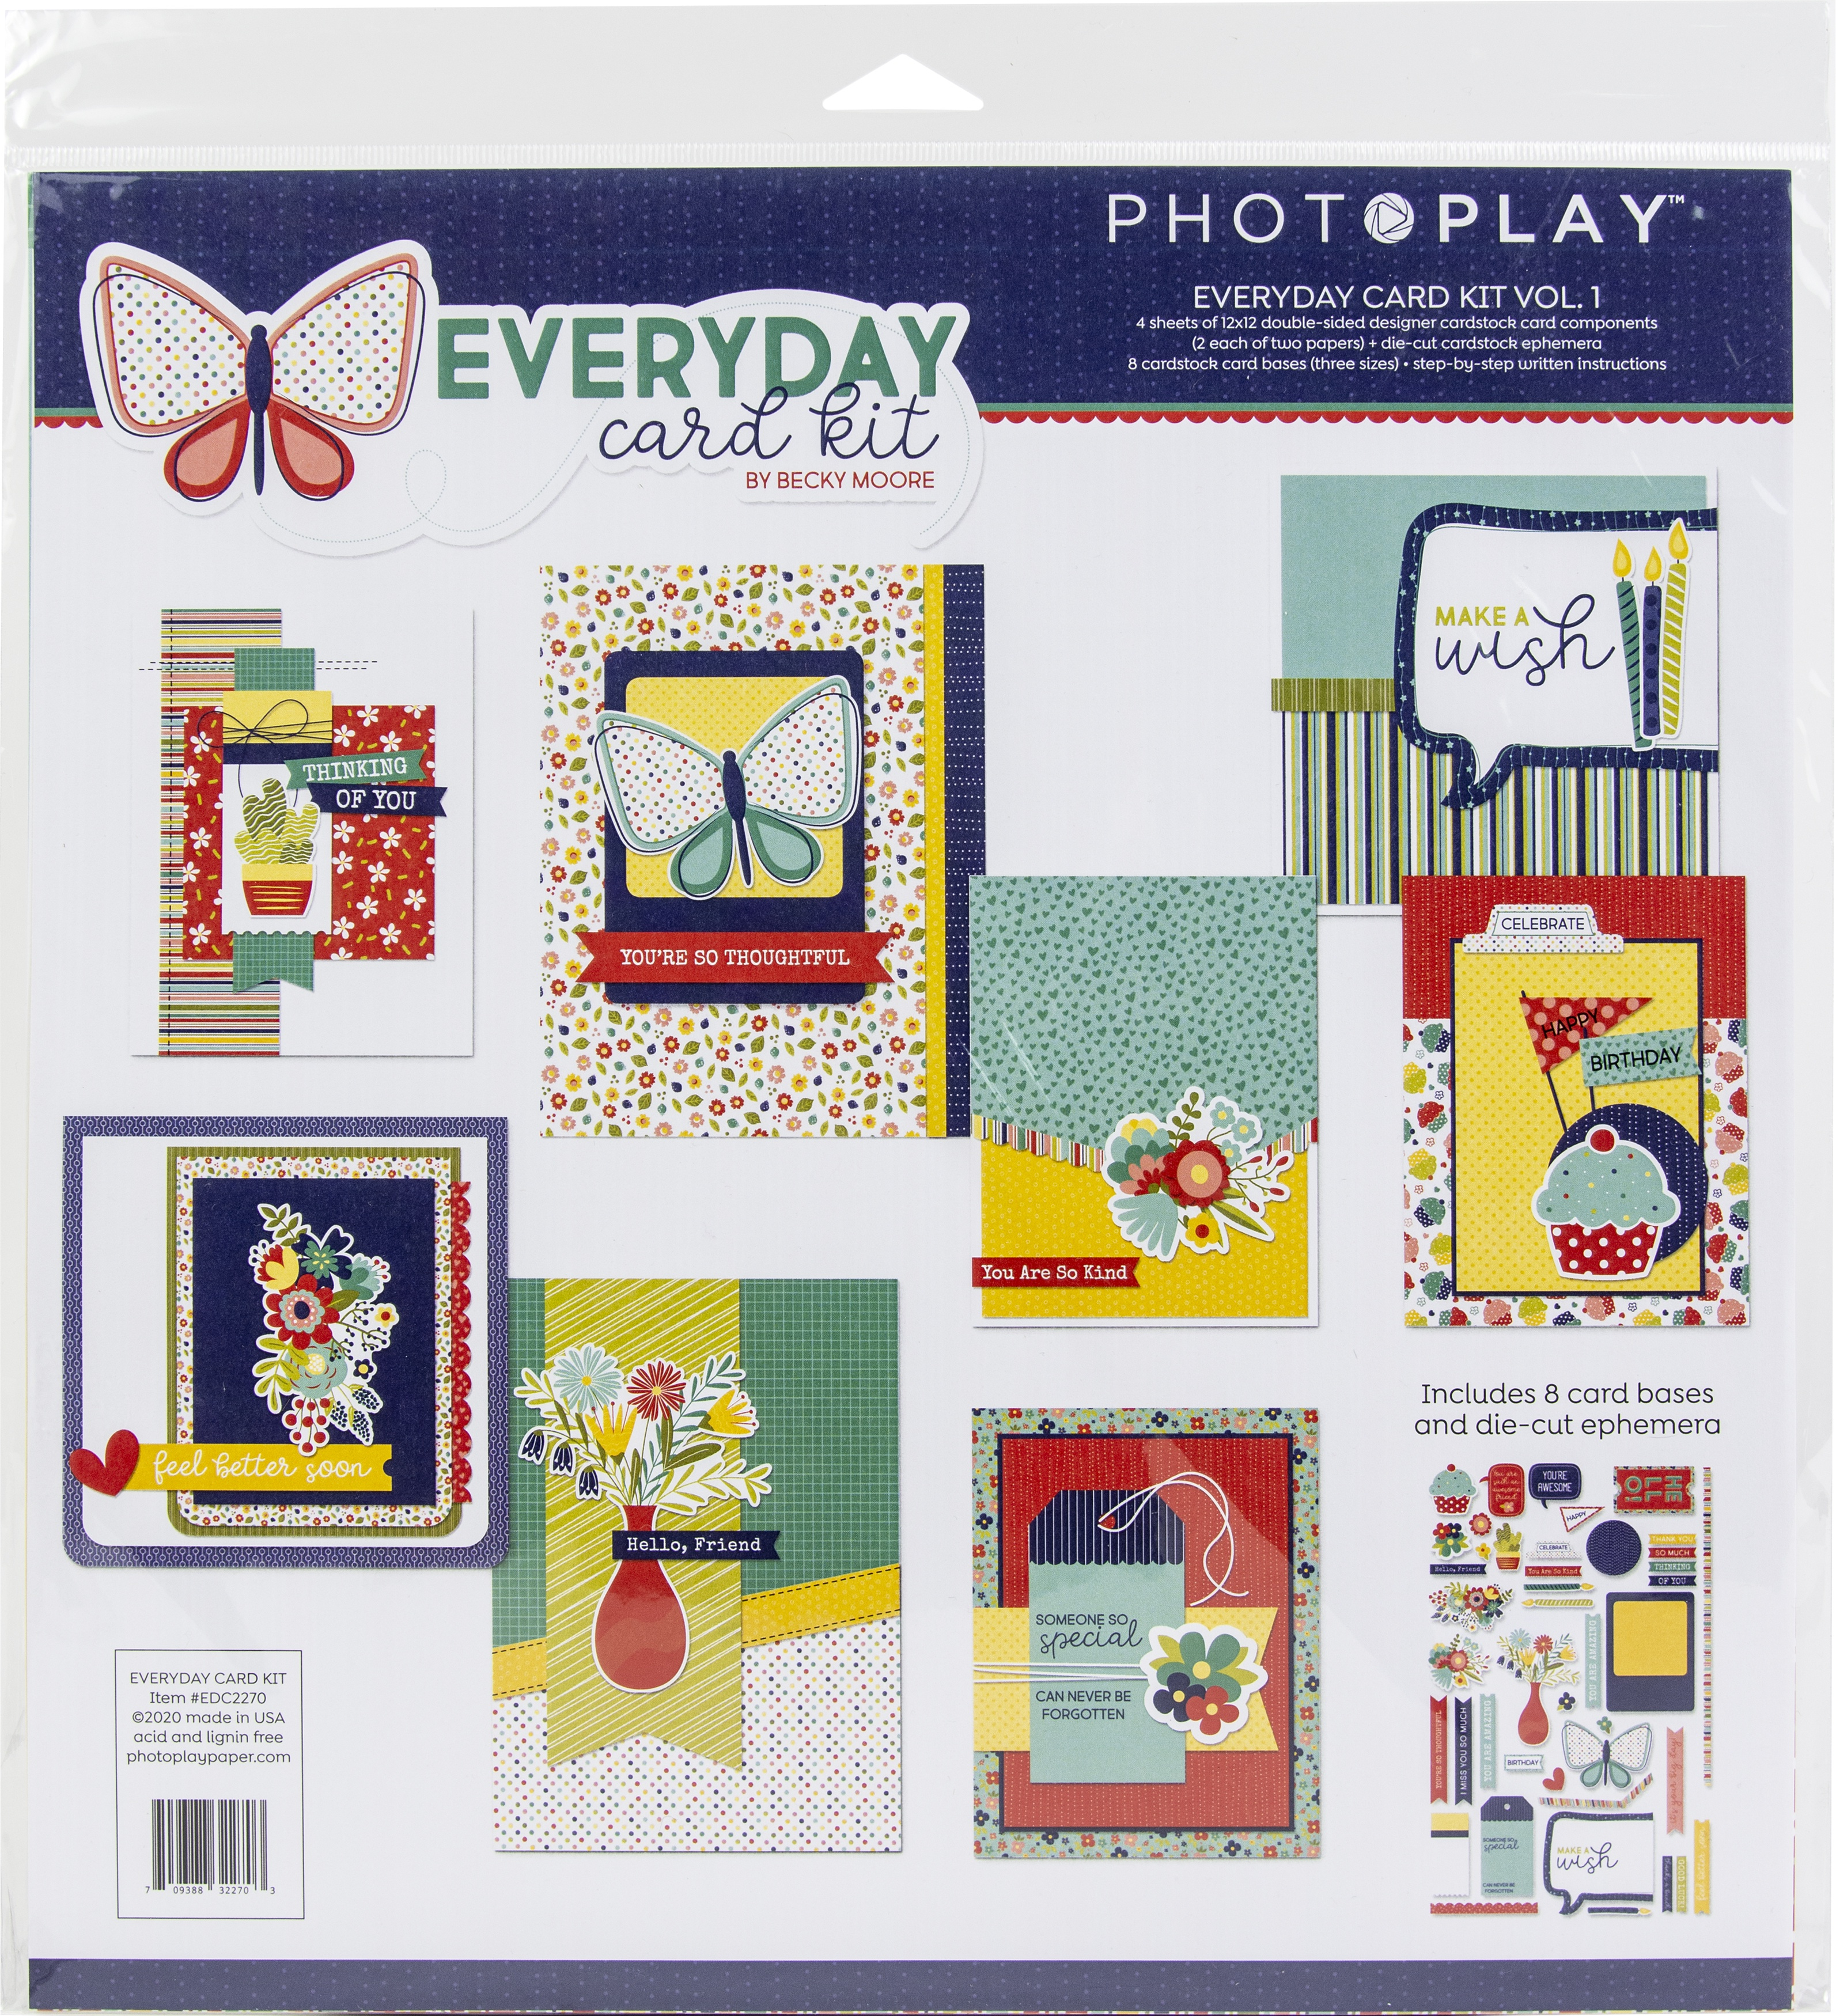 PhotoPlay Card Kit - Everyday